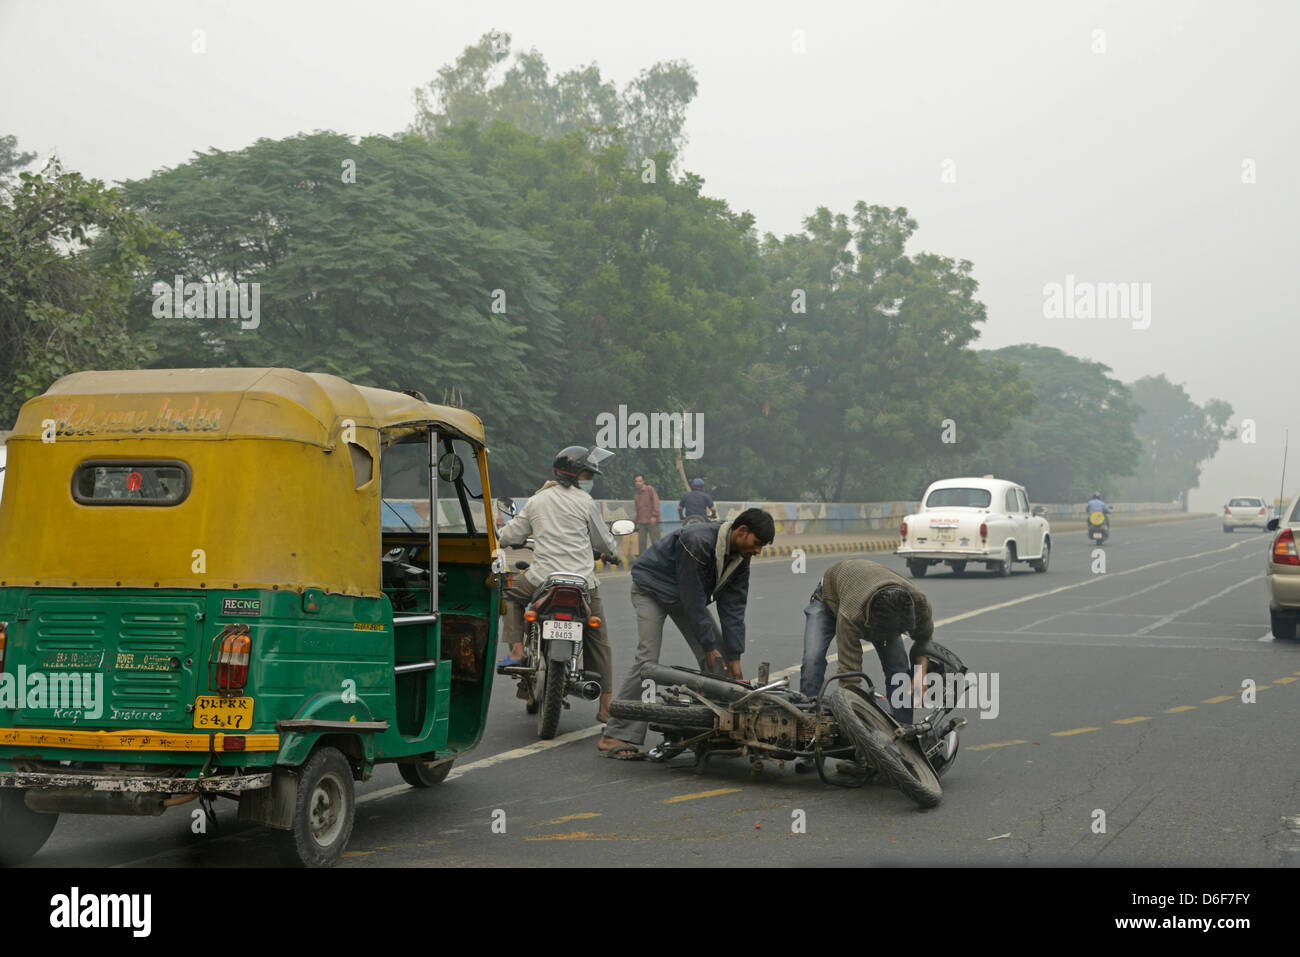 A tut-tu and motorcycle accident in New Delhi, India - Stock Image